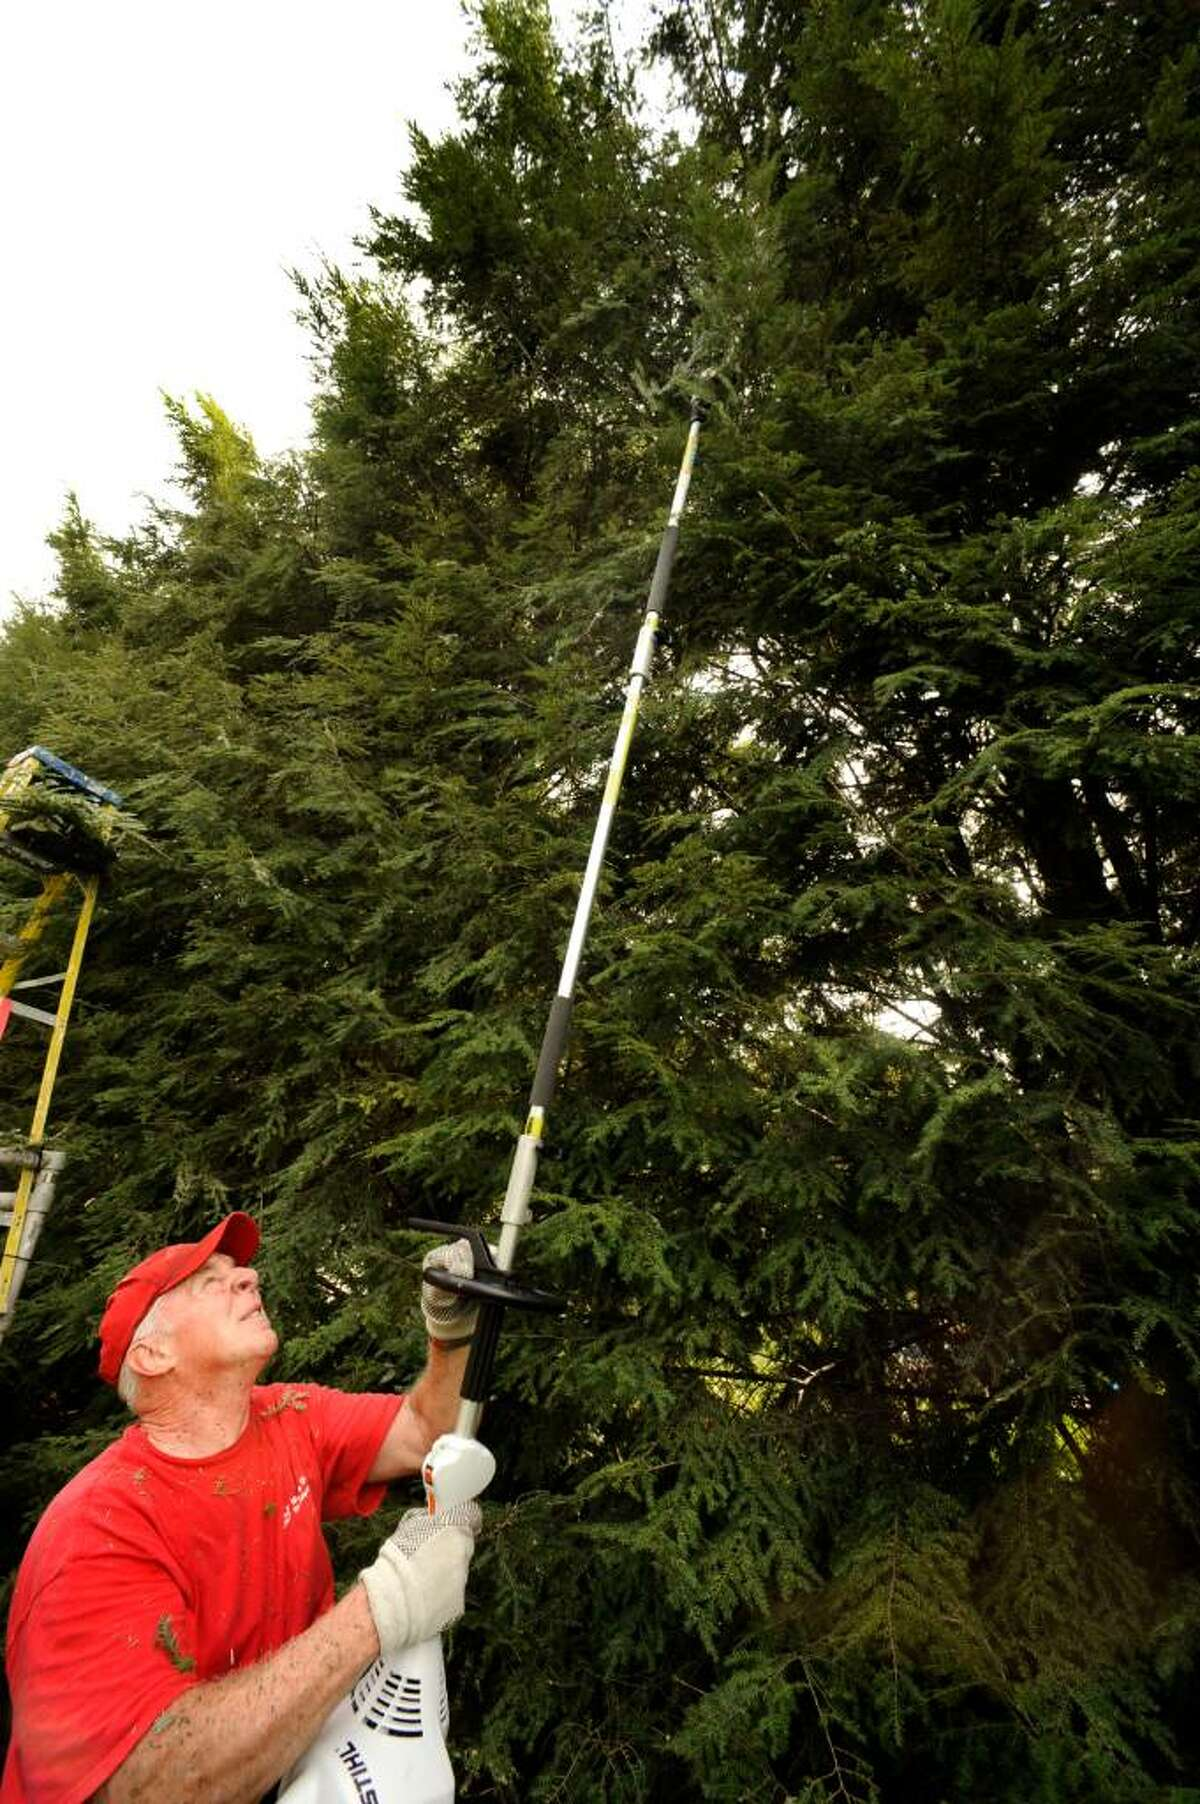 Peter Brady of Brookfield, known as the Handy Dandy Handyman, works trimming a hedge in Brookfield on Monday, Sept. 8, 2009.